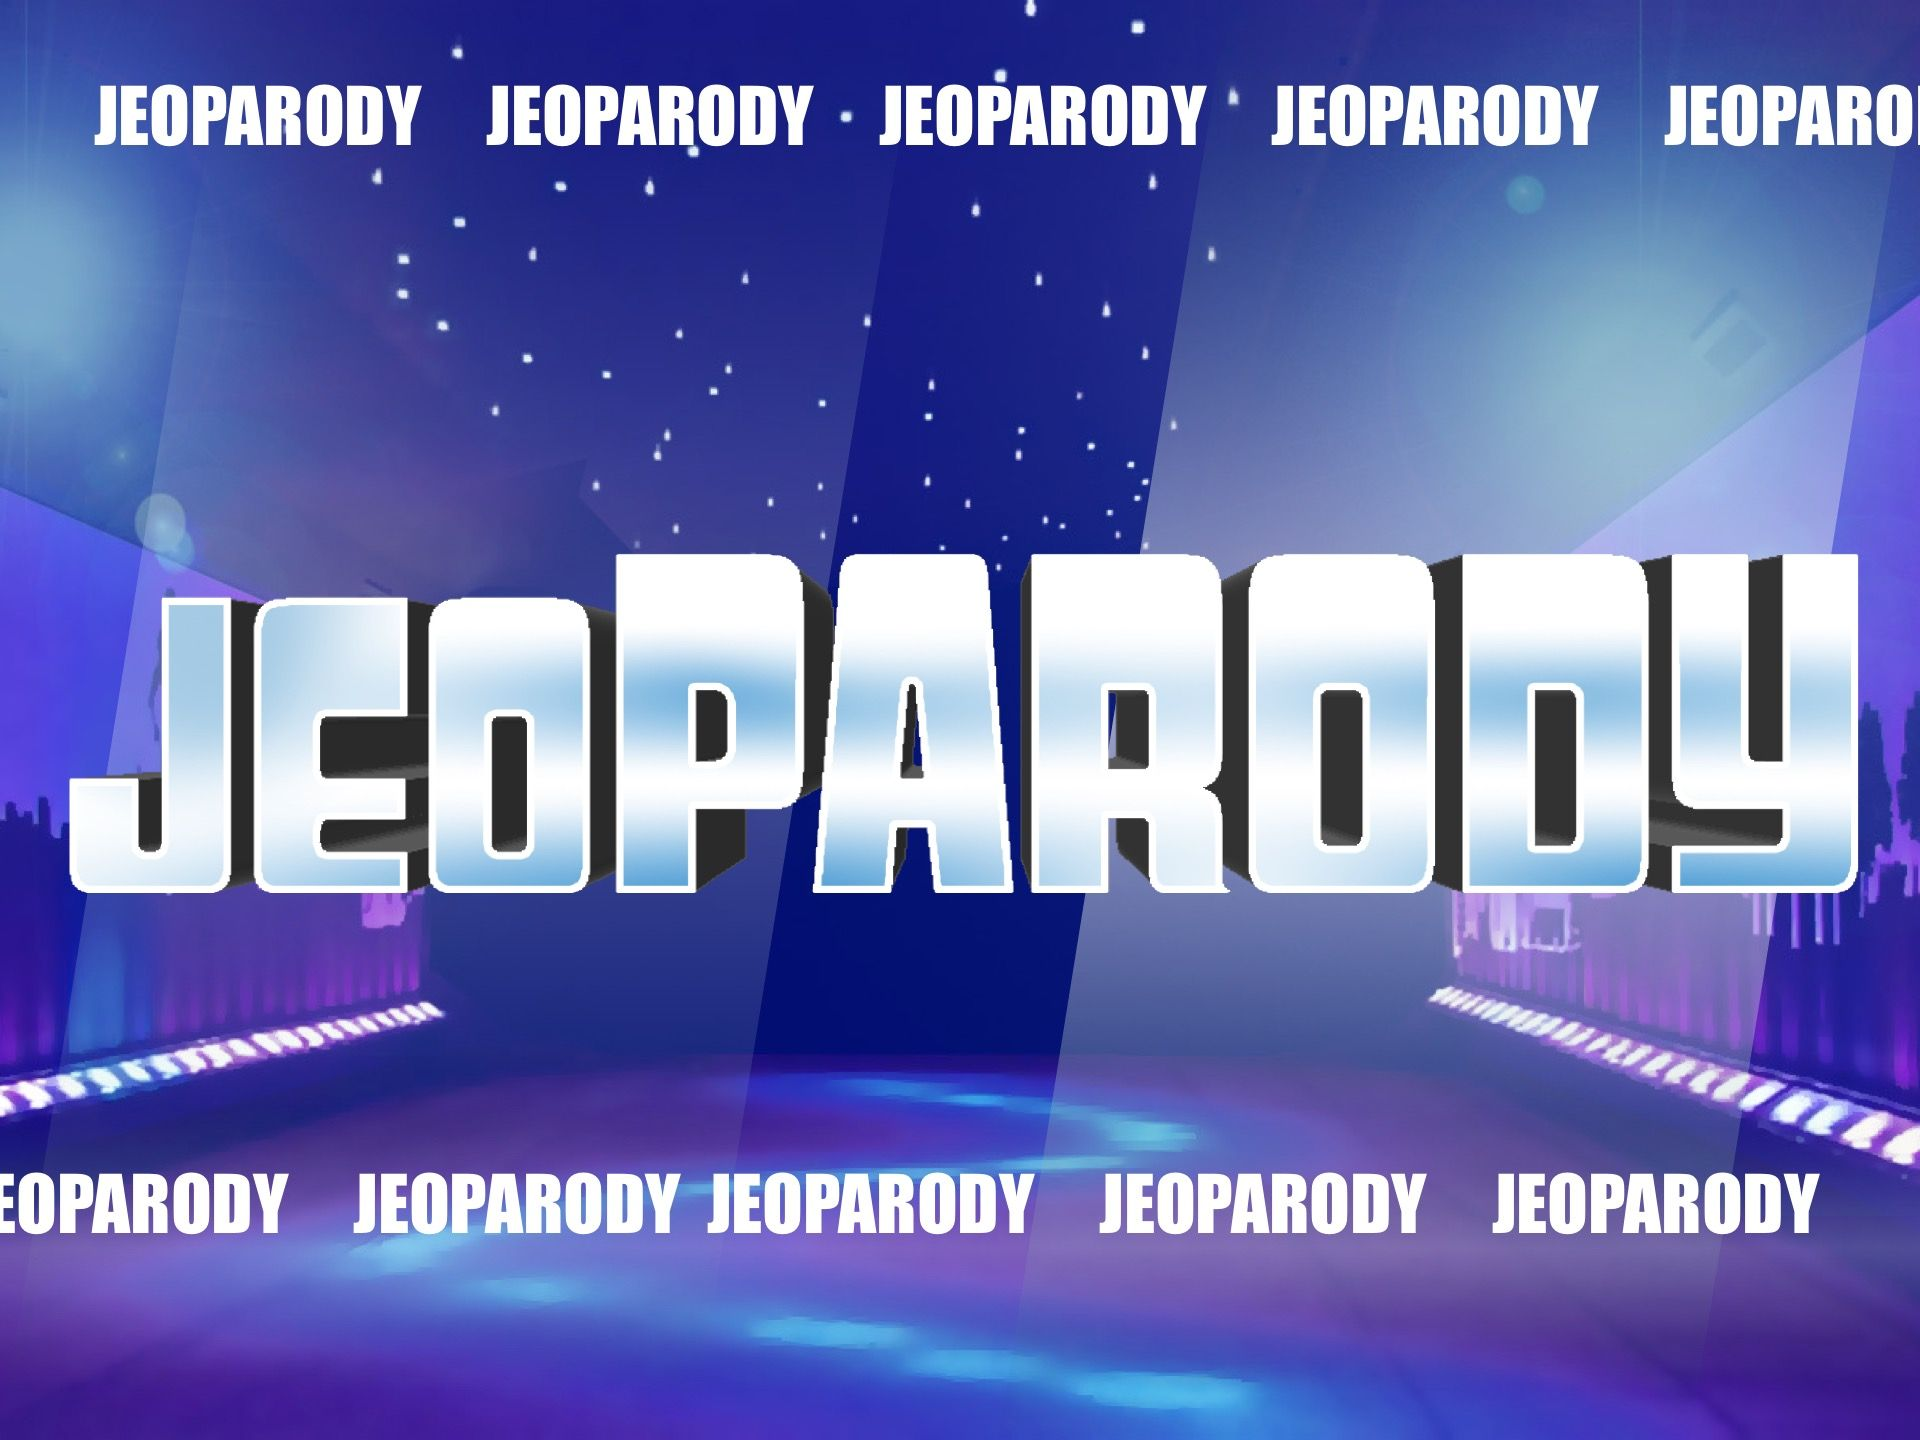 Fully editable jeopardy powerpoint template game with daily doubles fully editable jeopardy powerpoint template game with daily doubles final jeopardy theme music toneelgroepblik Gallery